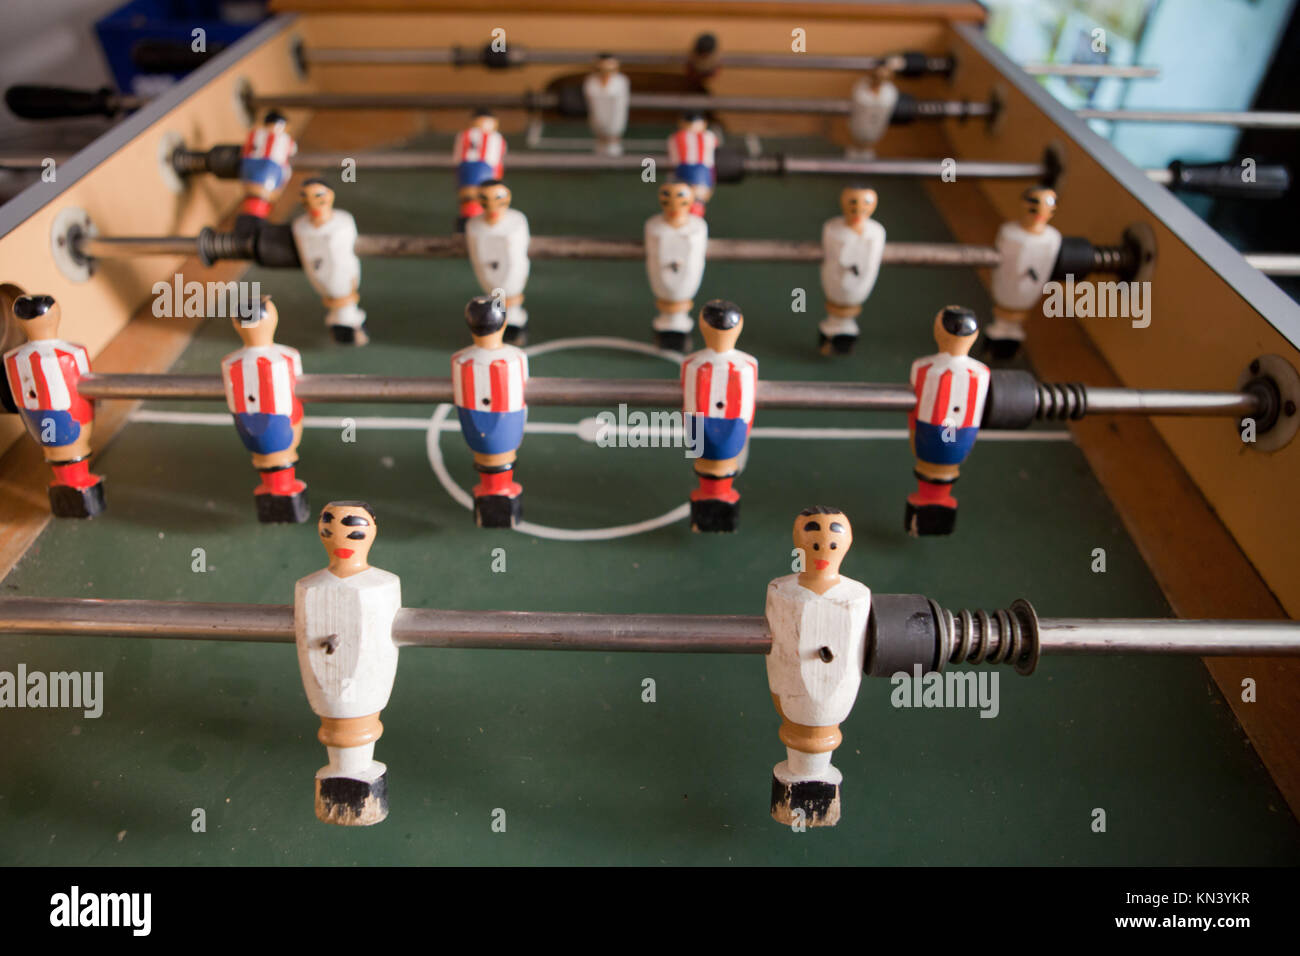 A table for table football in the pub, visible figures of toy mini football players. - Stock Image